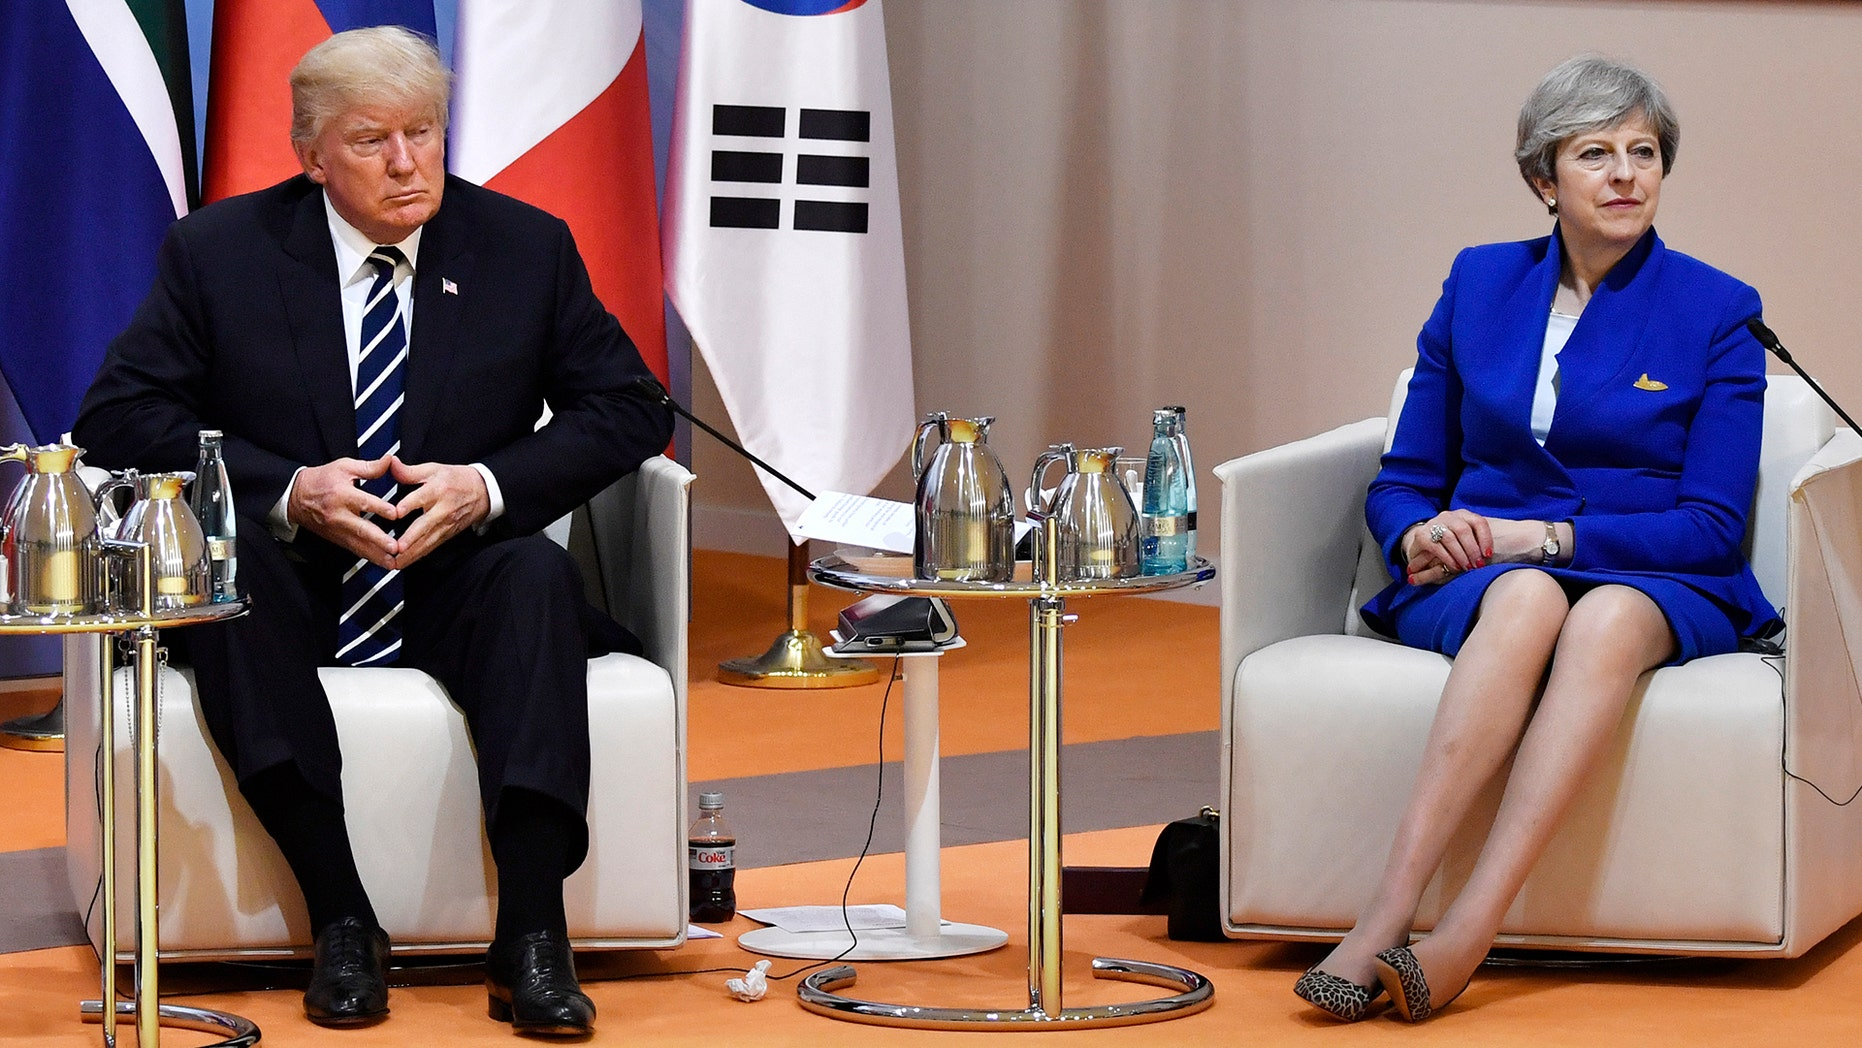 """US President Donald Trump and Britain's Prime Minister Theresa May sit at the start of the """"retreat meeting"""" on the first day of the G-20 summit in Hamburg, northern Germany, on Friday July 7, 2017 . Leaders of the world's top economies will gather from July 7 to 8, 2017.  (John MacDougall/Pool Photo via AP)"""